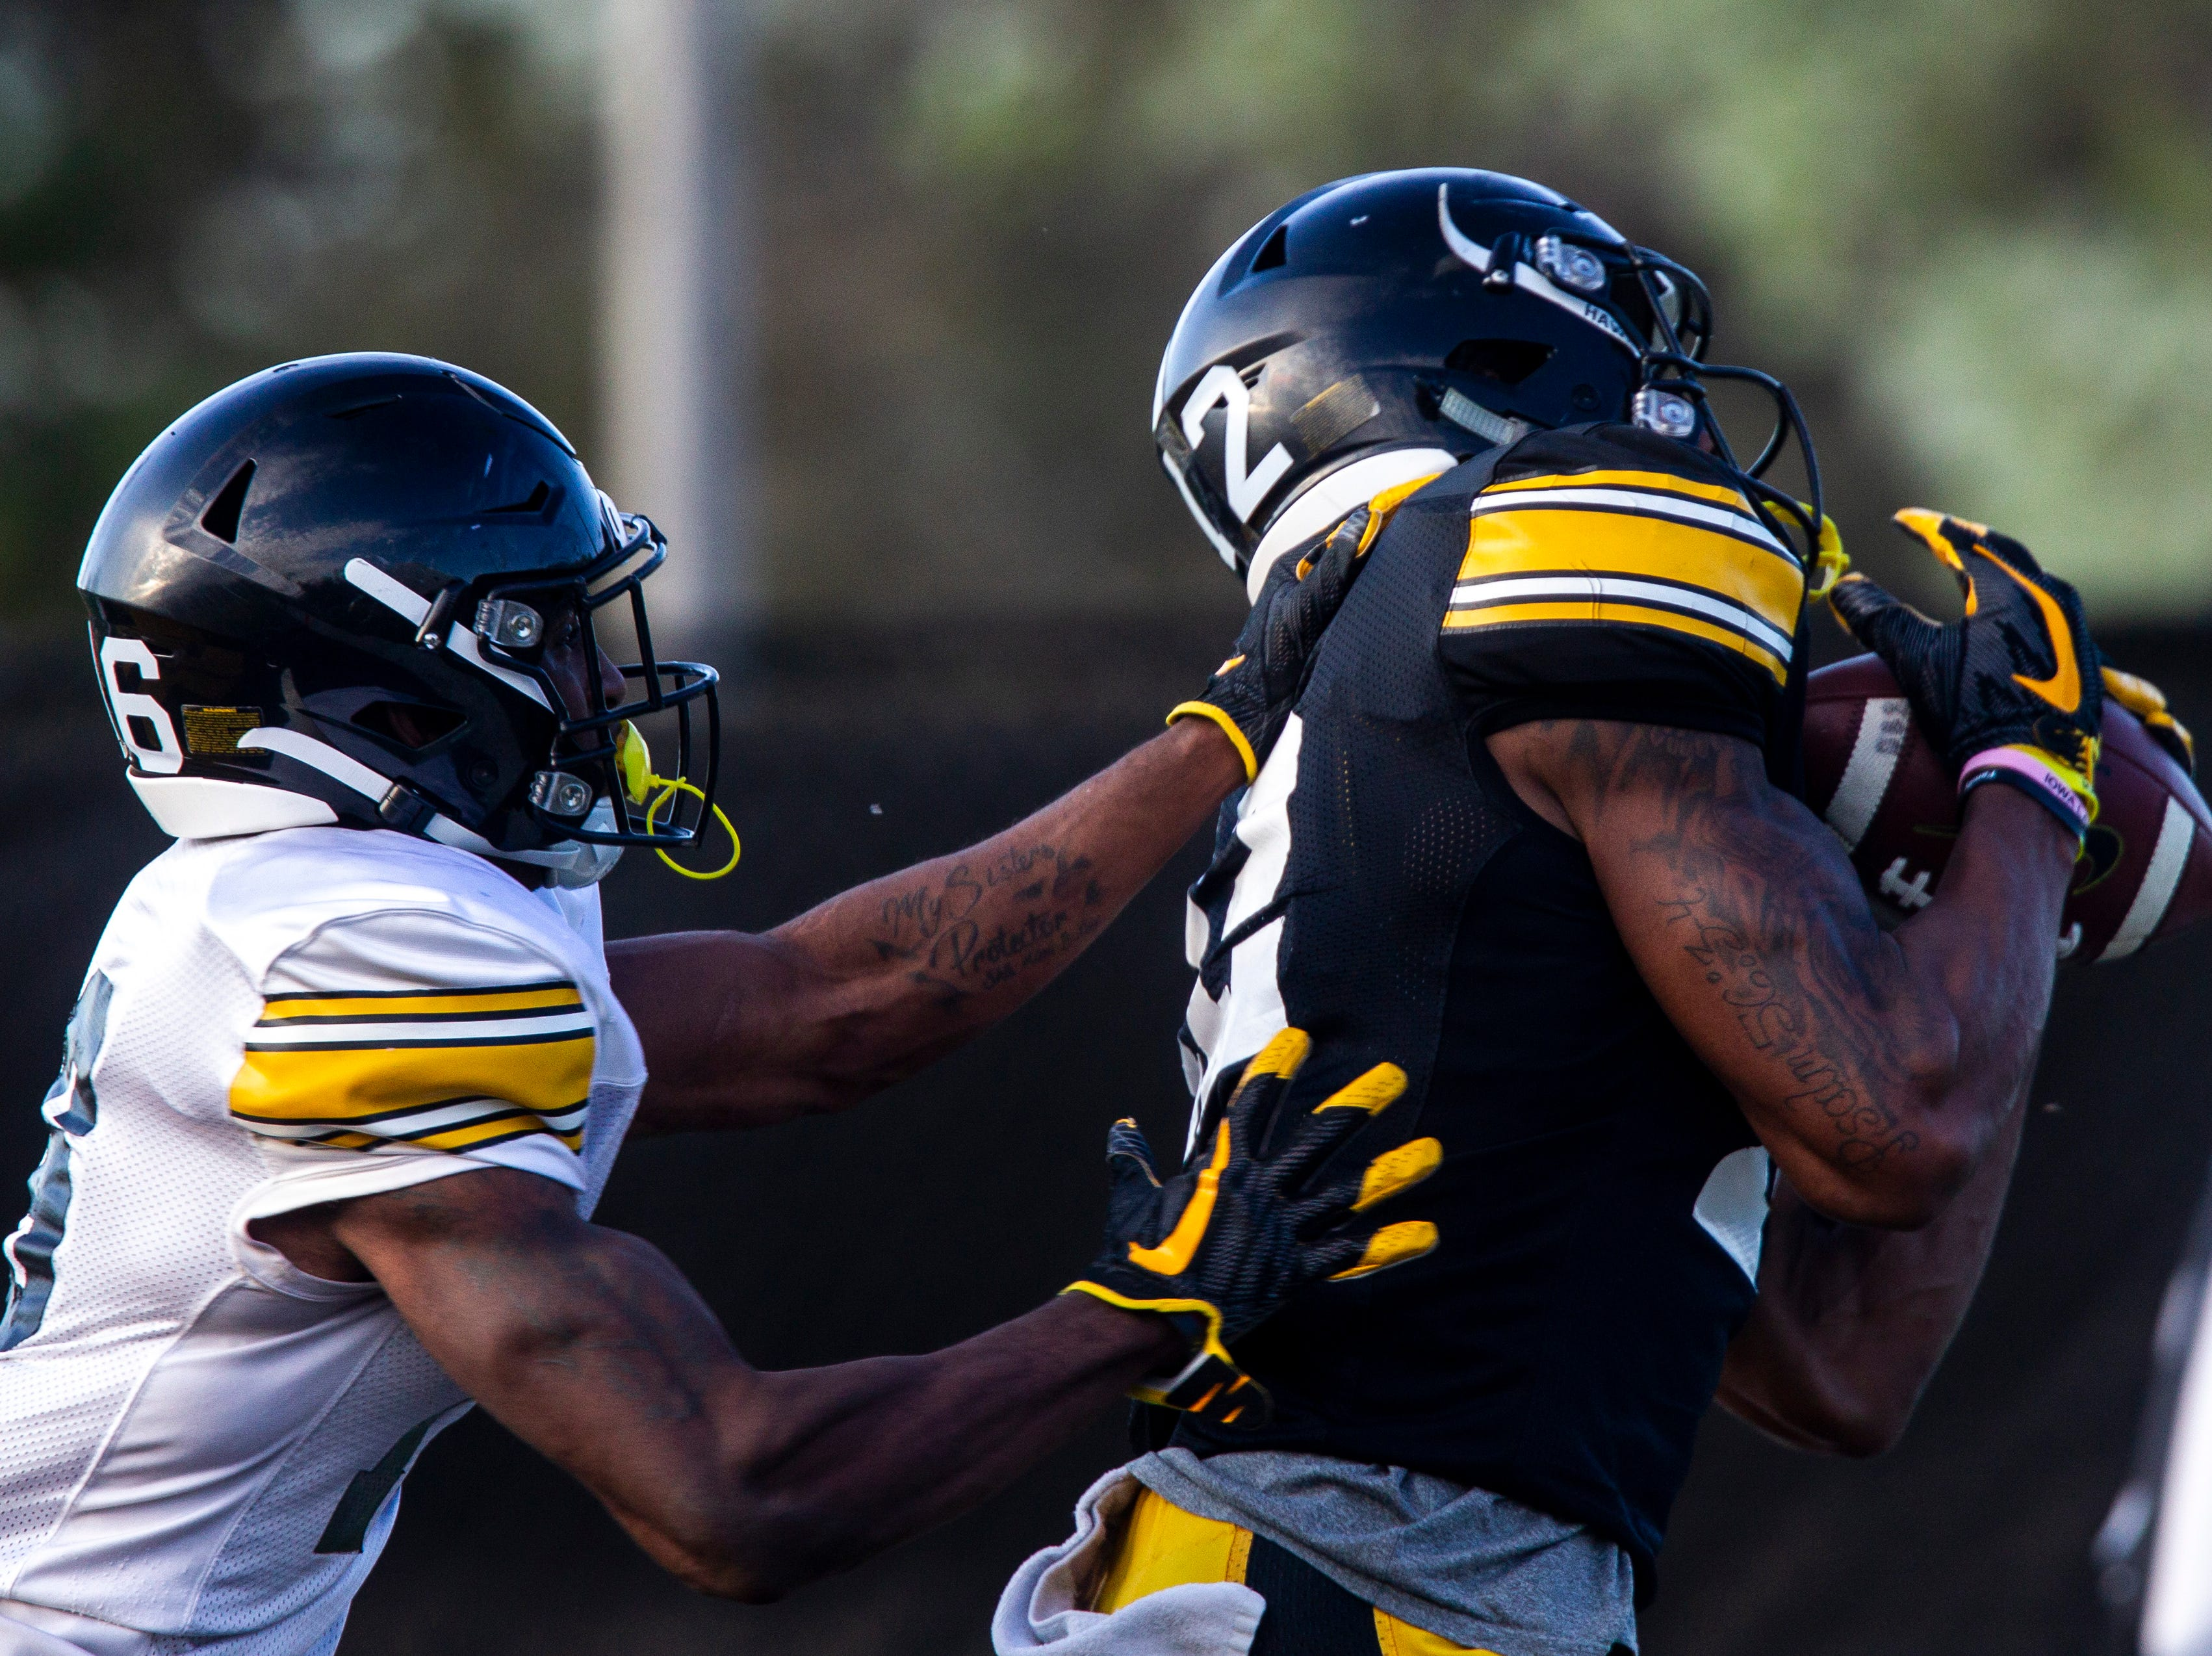 Iowa wide receiver Brandon Smith (12) pulls in a touchdown pass during the final spring football practice, Friday, April 26, 2019, at the University of Iowa outdoor practice facility in Iowa City, Iowa.